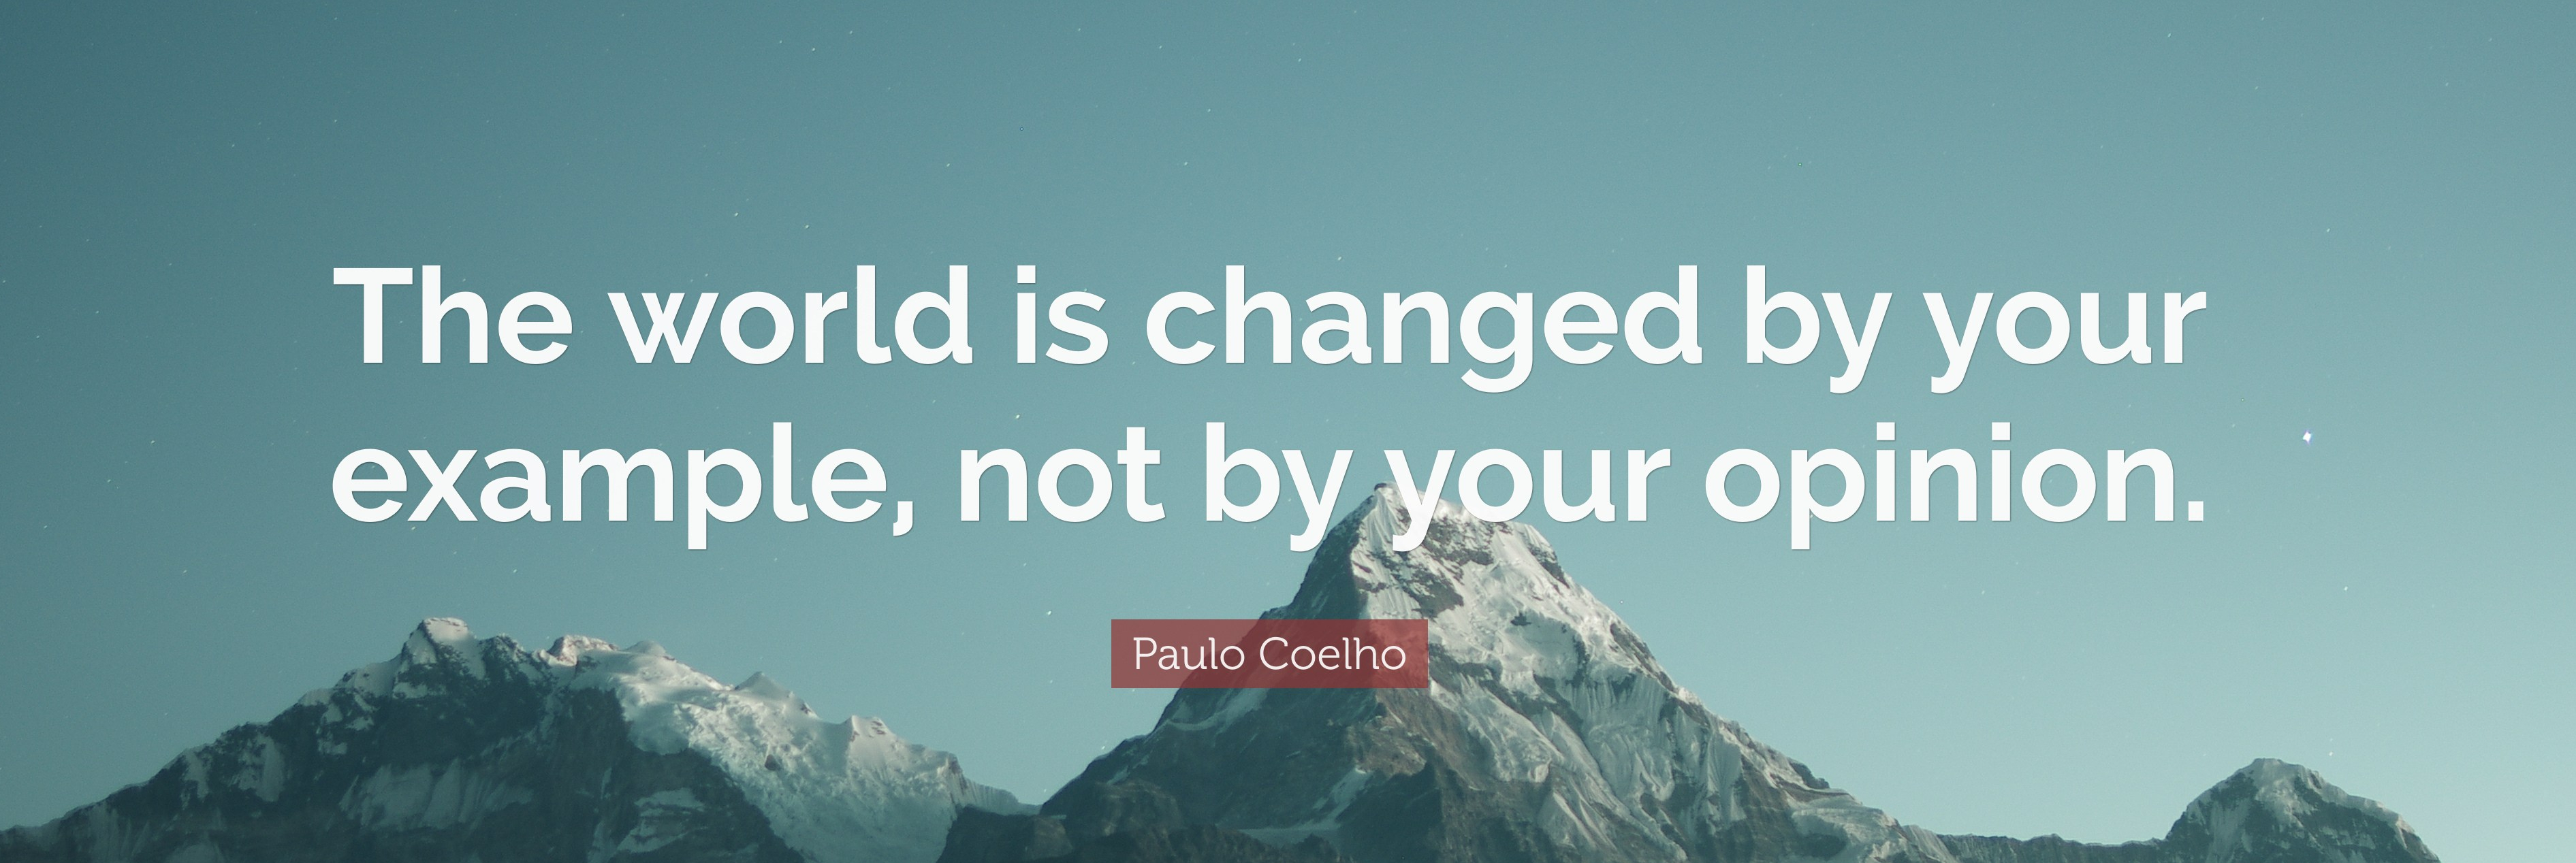 2003098-Paulo-Coelho-Quote-The-world-is-changed-by-your-example-not-by